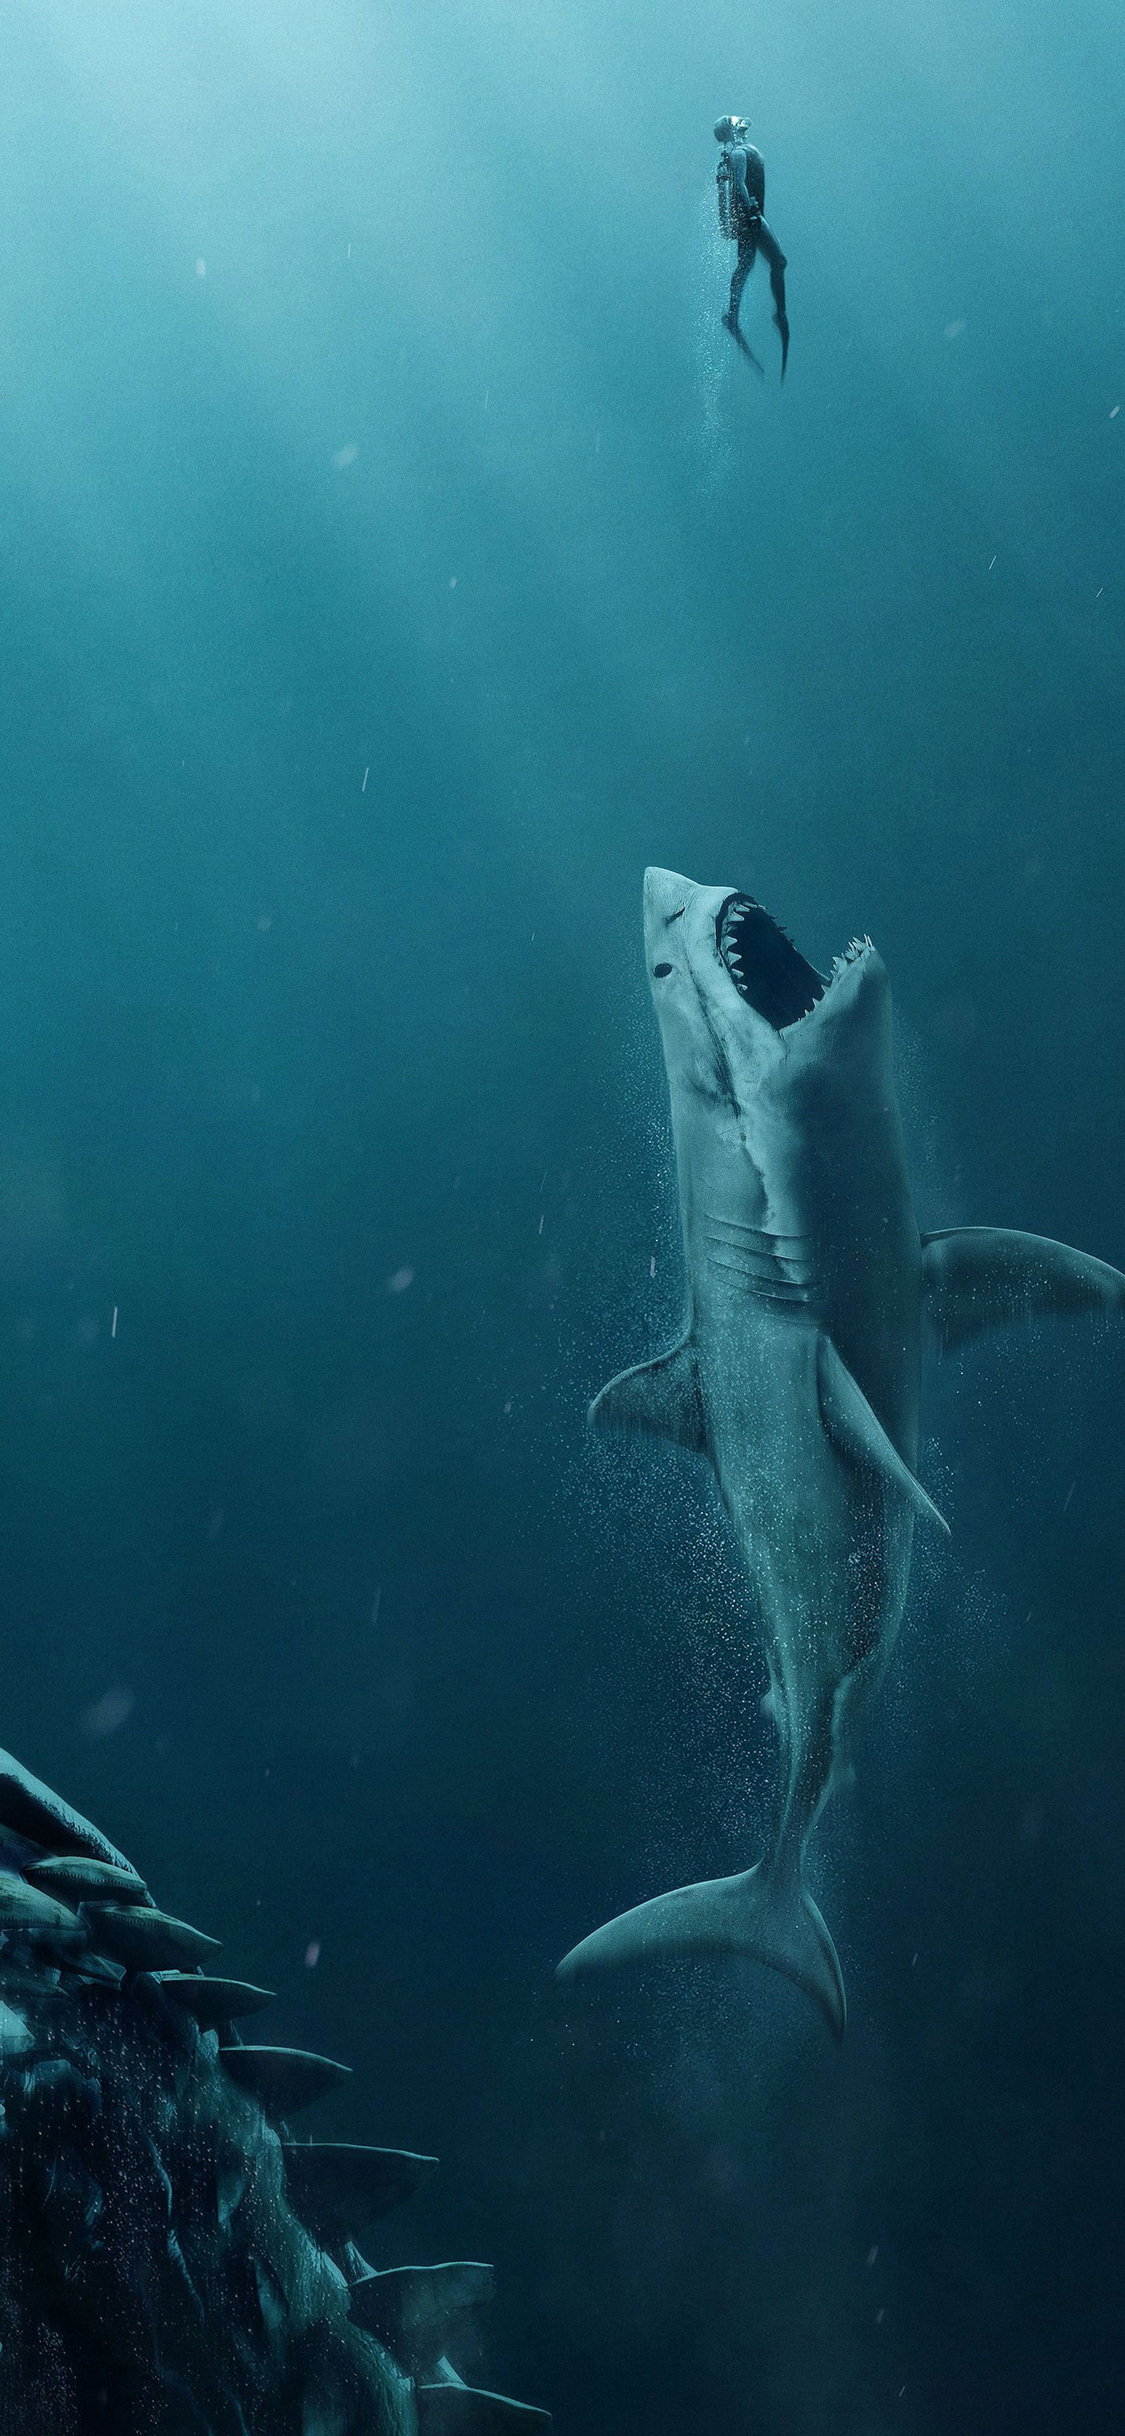 1125x2436 the meg movie 4k iphone xs iphone 10 iphone x hd - 4k girl wallpaper for iphone ...